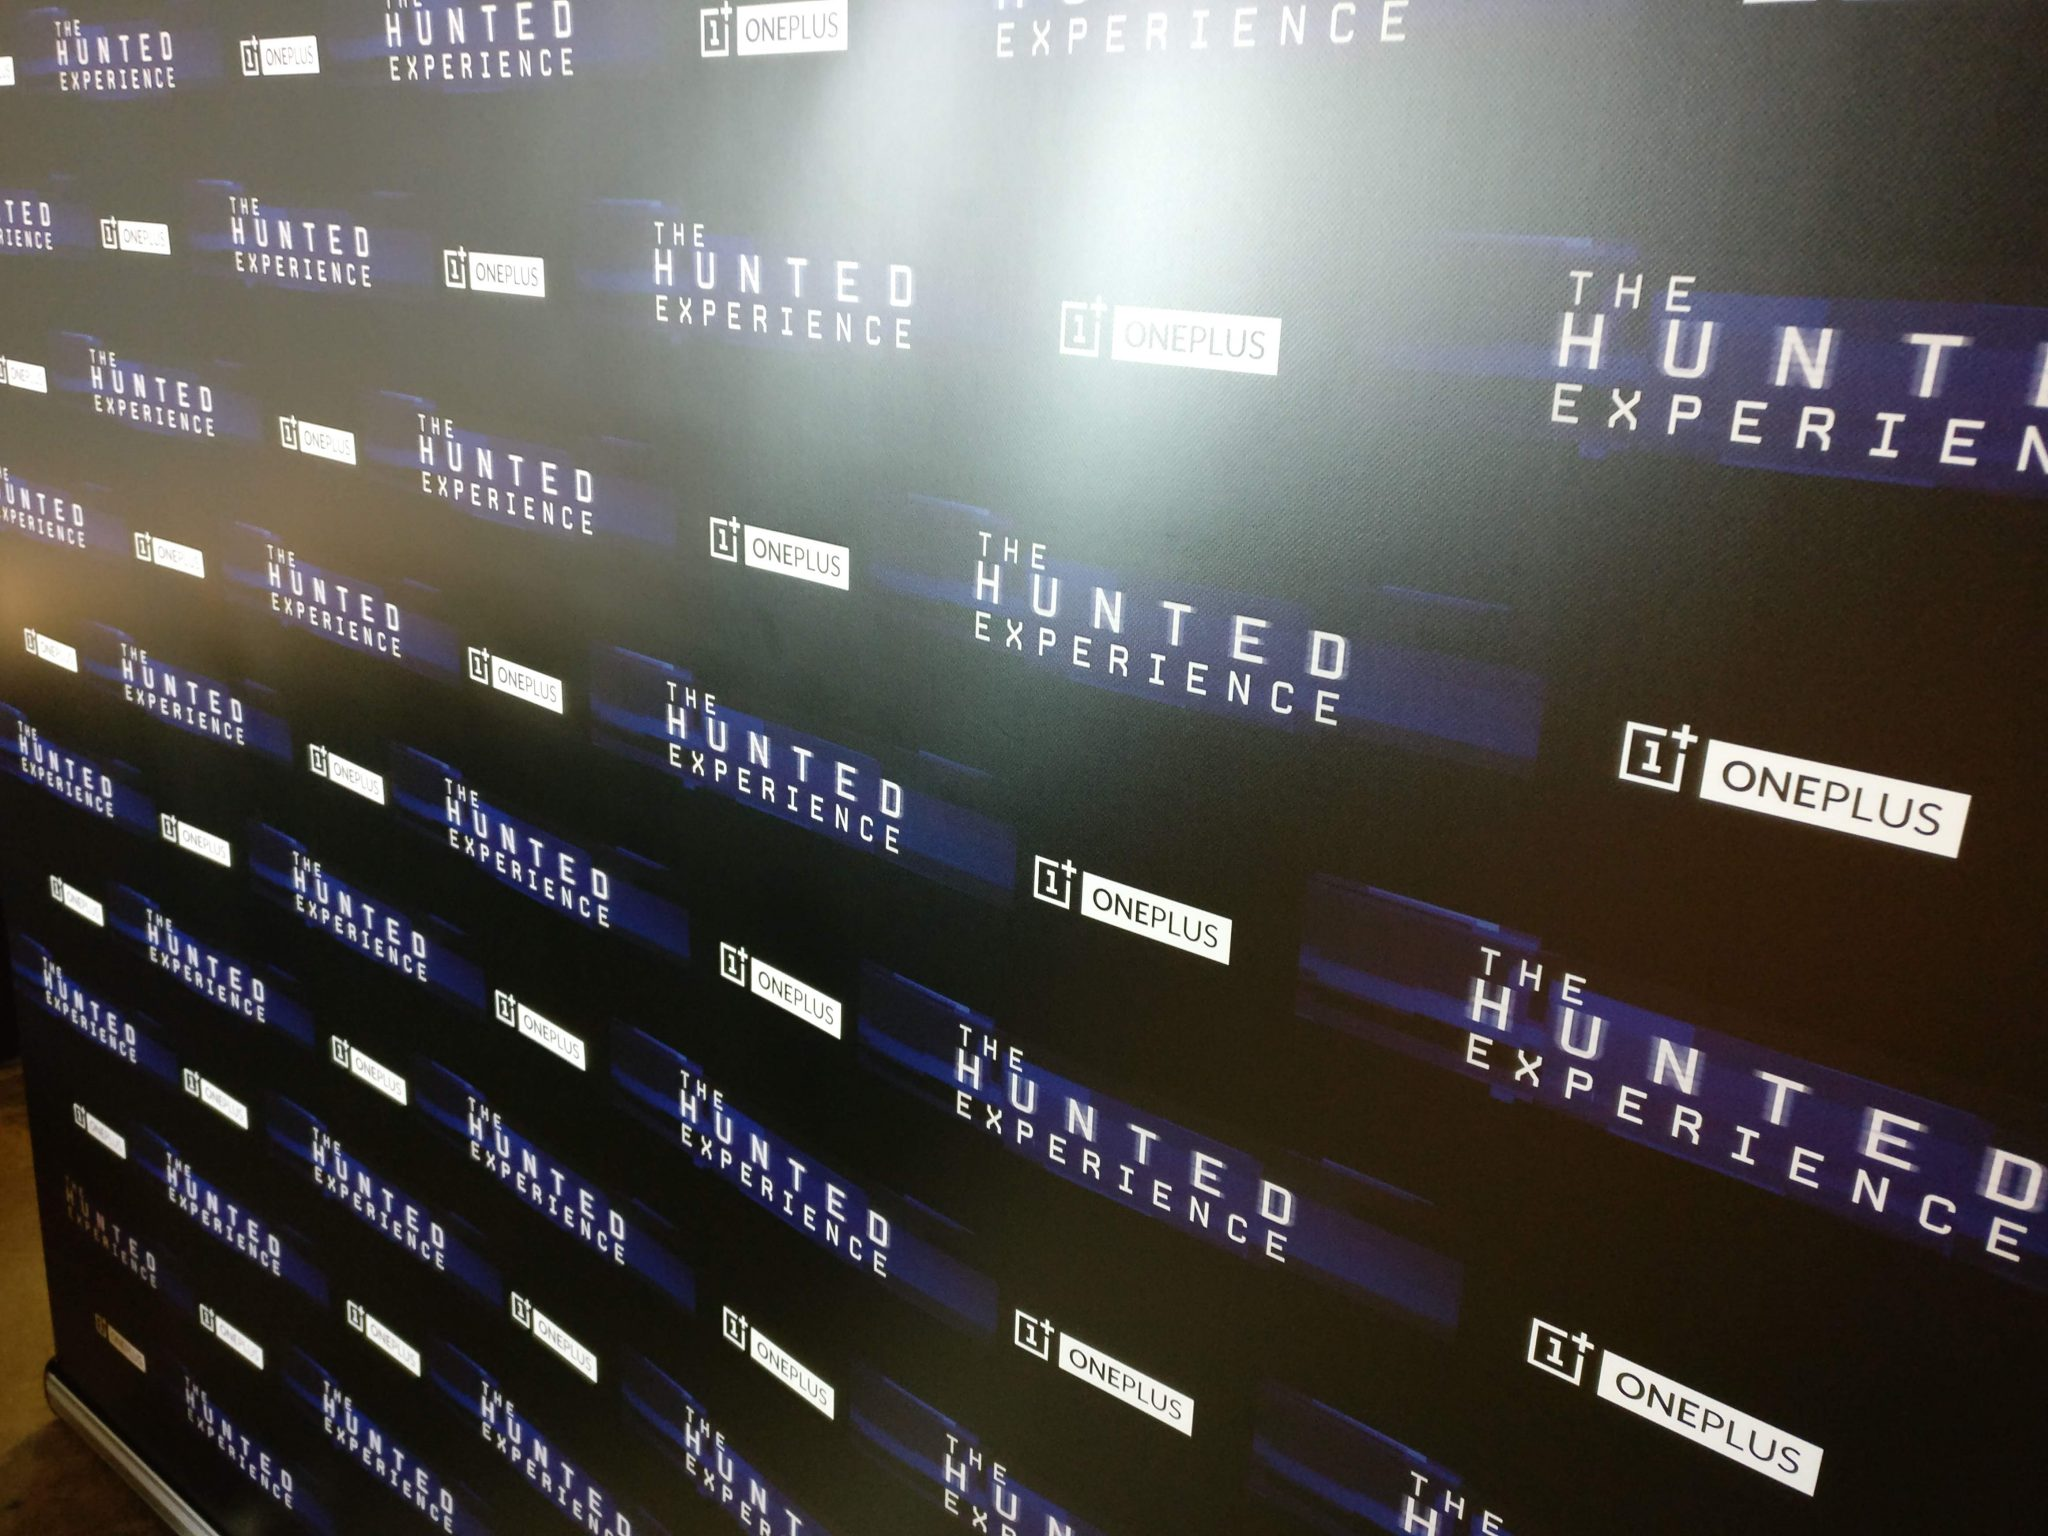 Hunted Experience photo wall